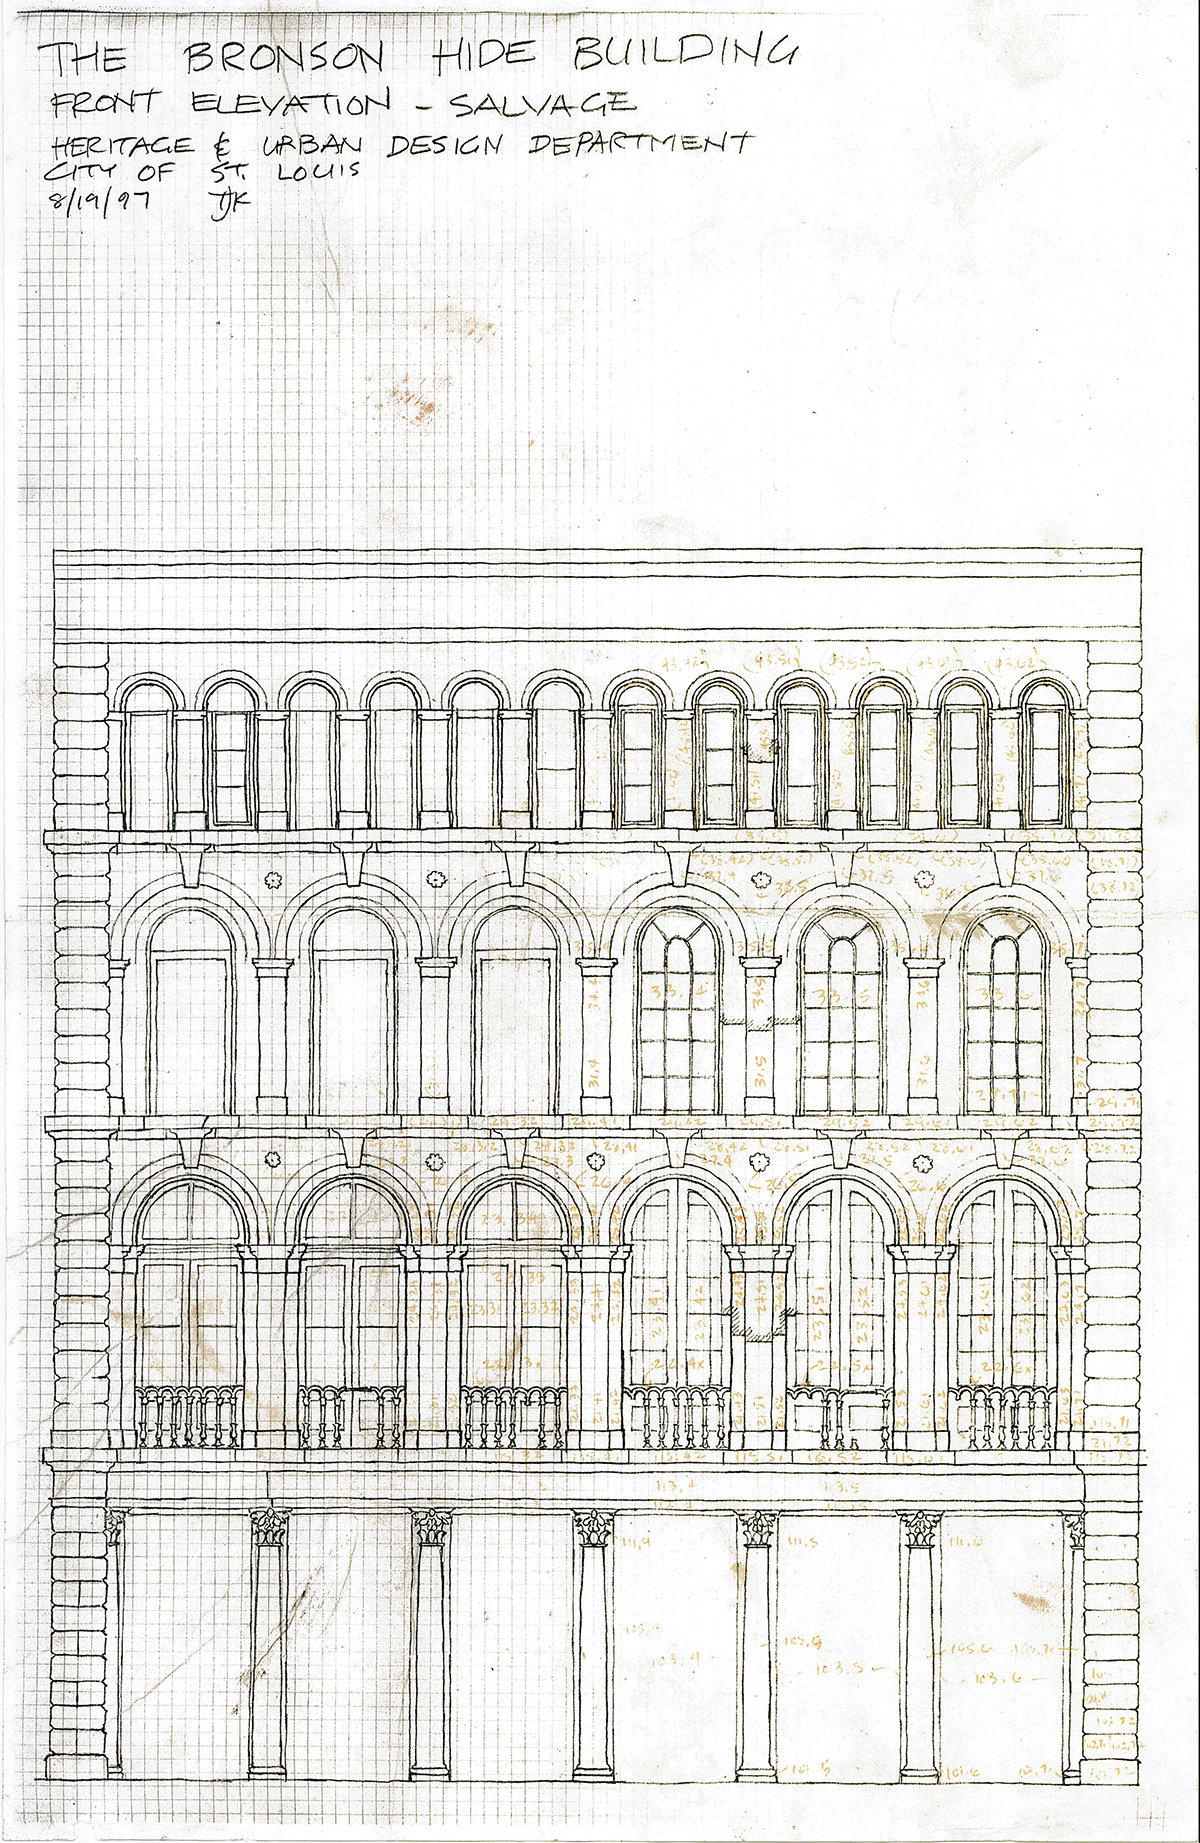 Bronson Hide: Iron Store Front, drawing of front elevation.